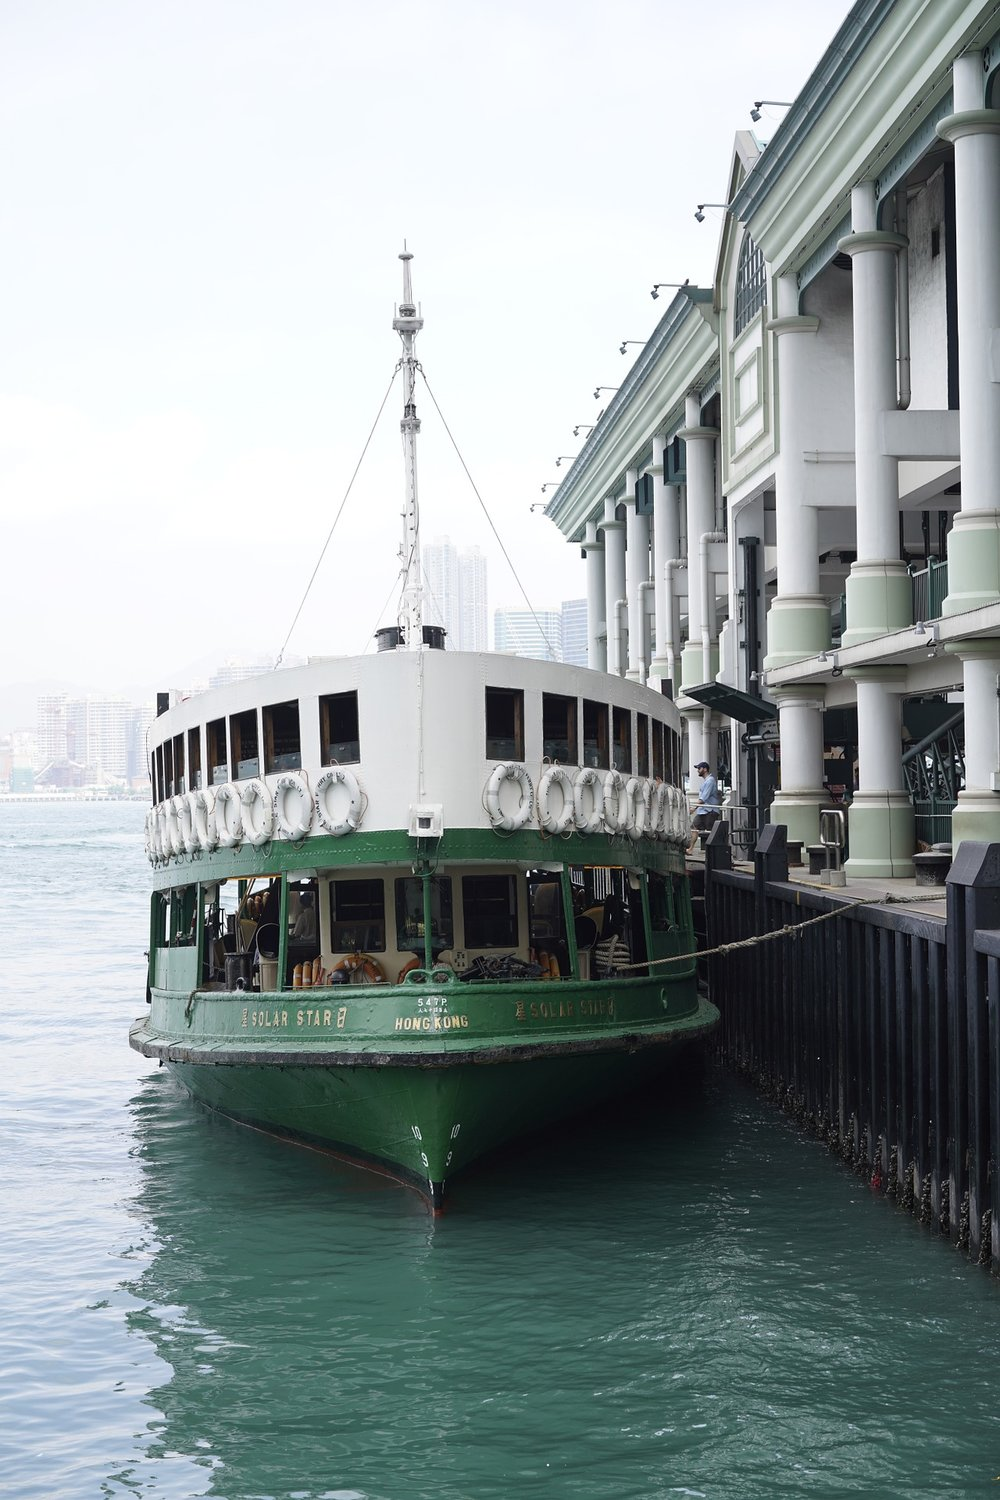 The Hong Kong Star Ferry docked at the ferry terminal. (via Pixabay)